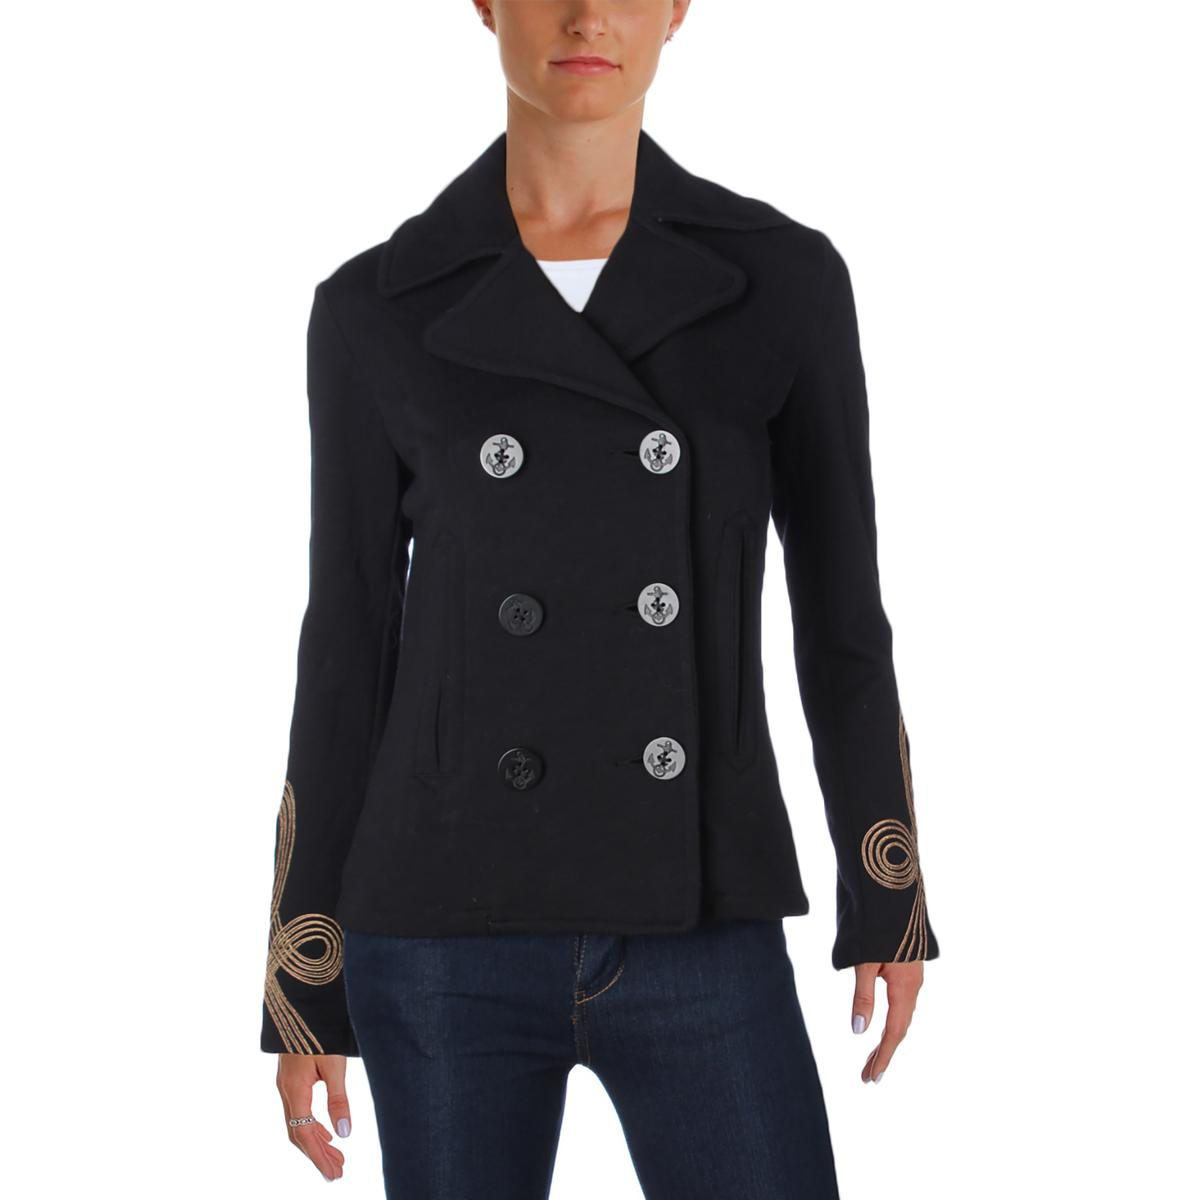 Denim & Supply Ralph Lauren Womens Knit Embroidered Pea Coat